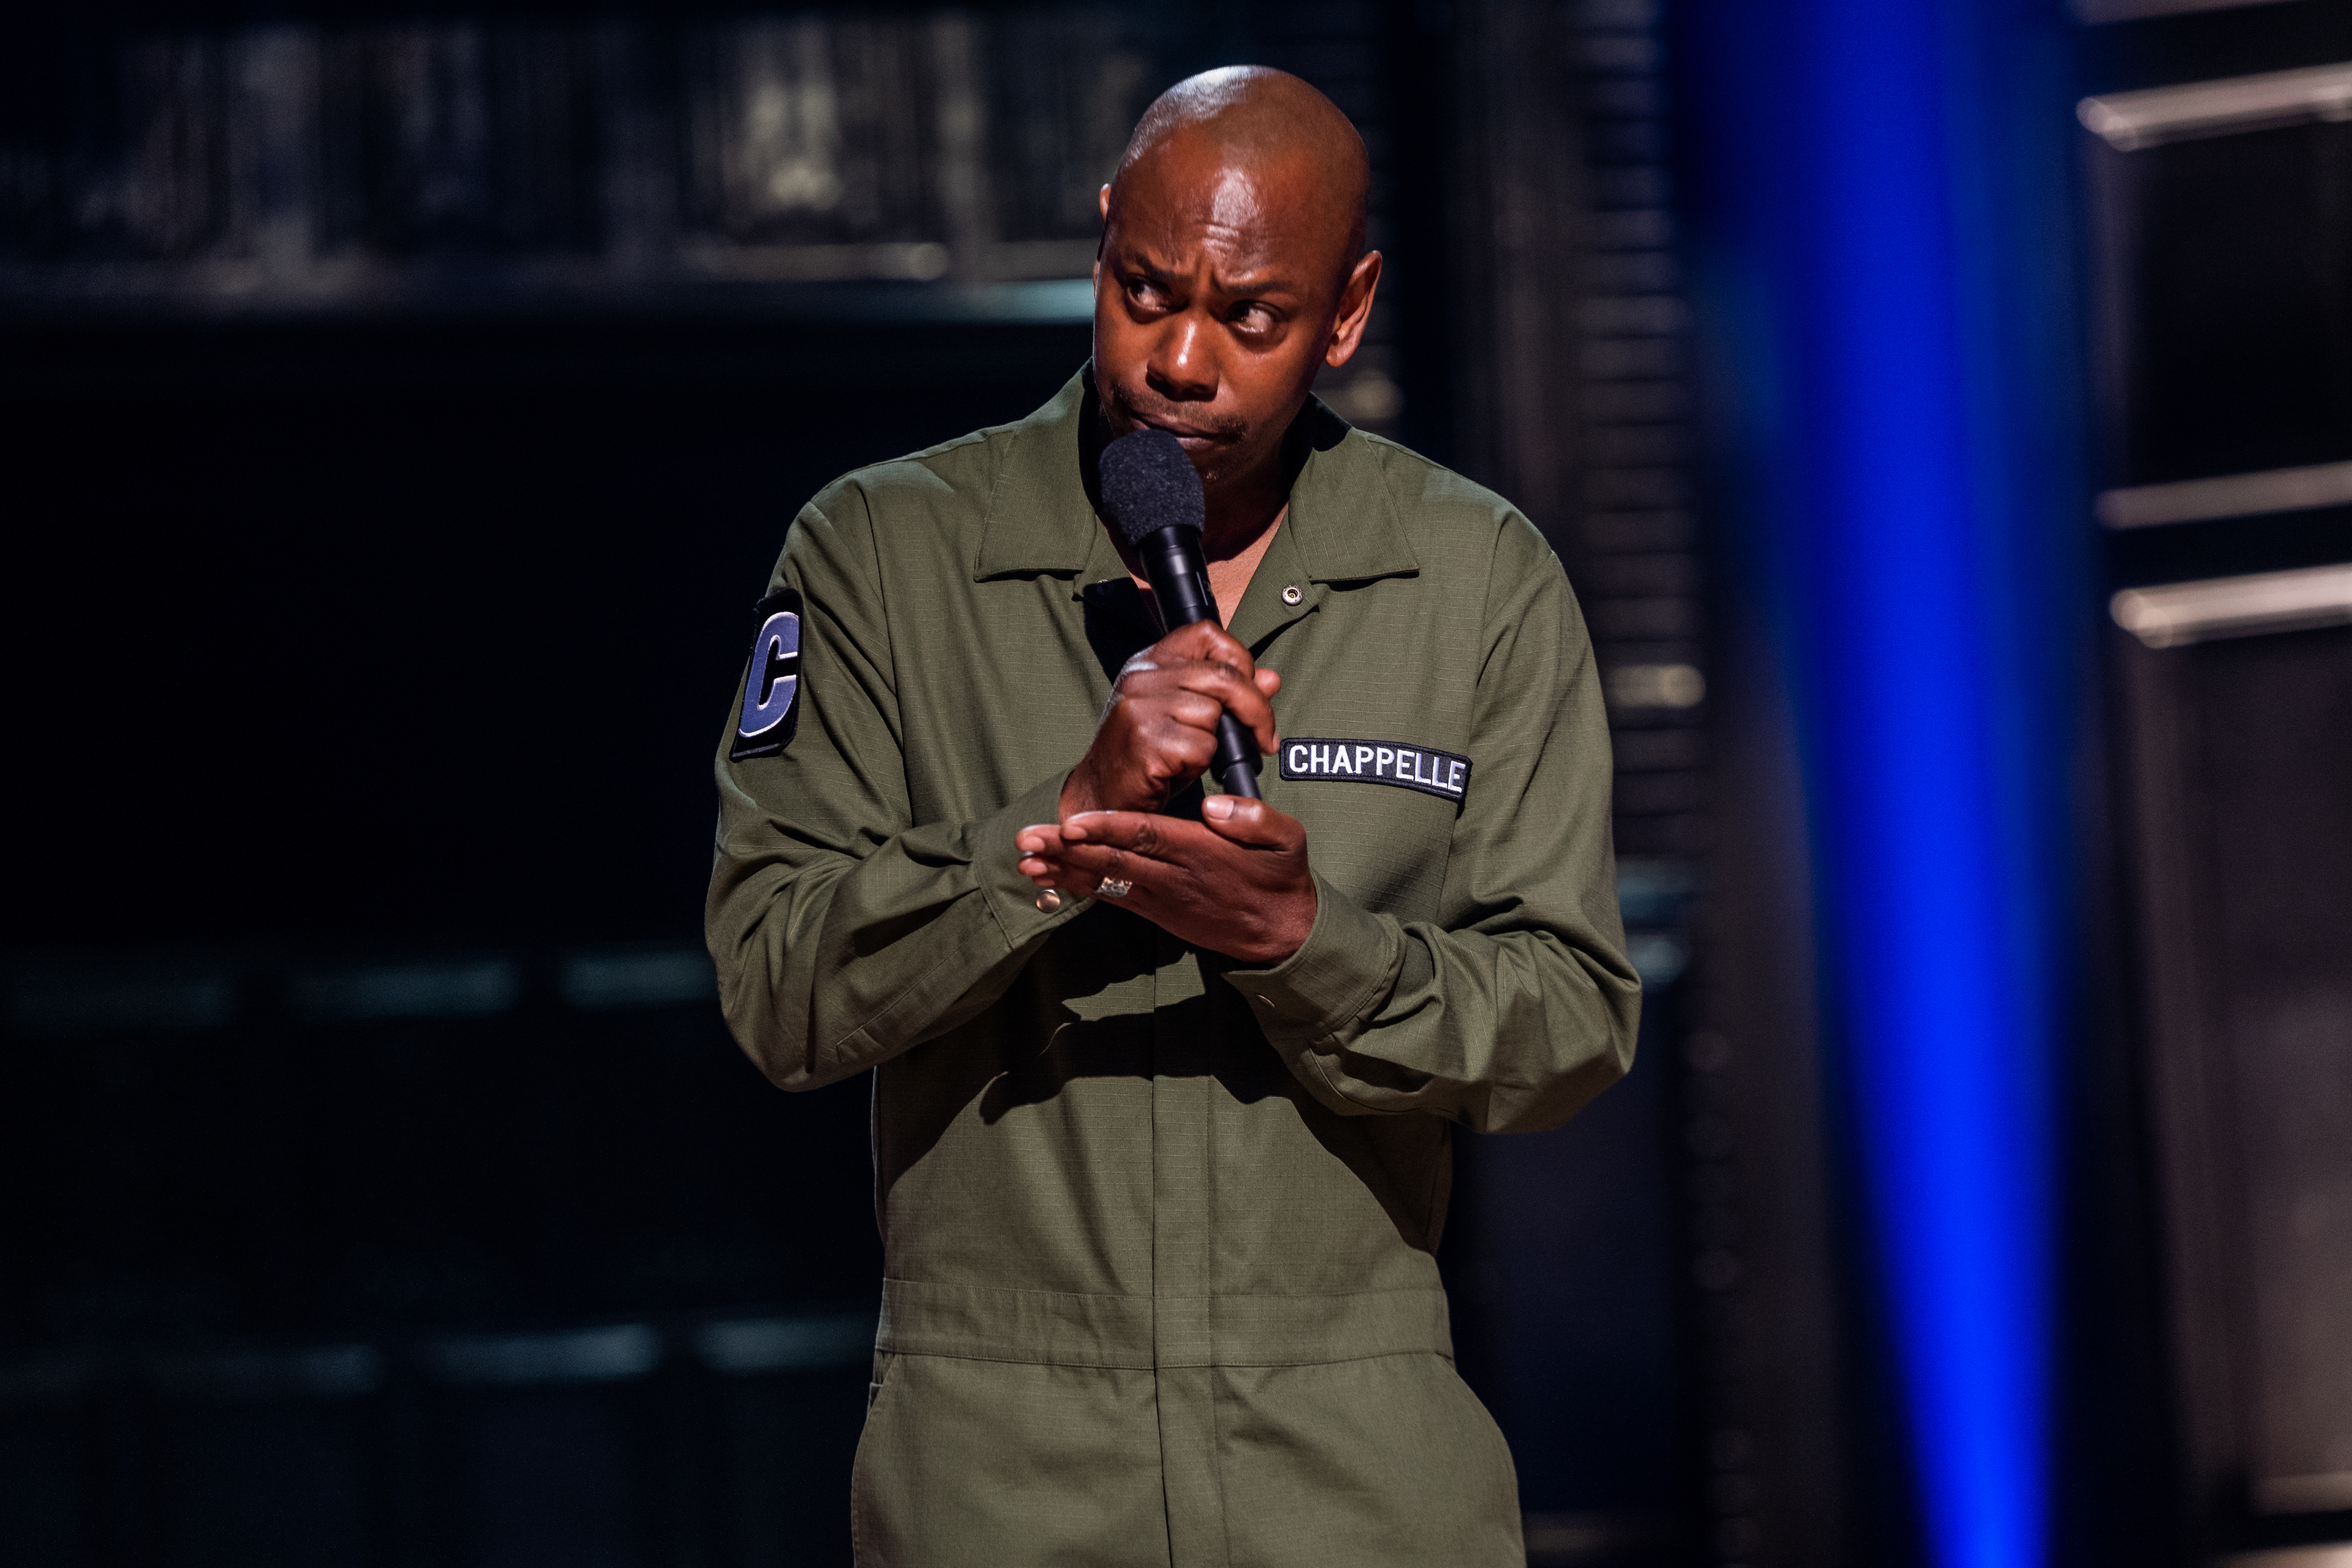 dave chappelle defends kevin hart in controversial new netflix comedy special sticks stones https www inquirer com entertainment tv dave chappelle netflix comedy kevin hart louis ck michael jackson 20190828 html